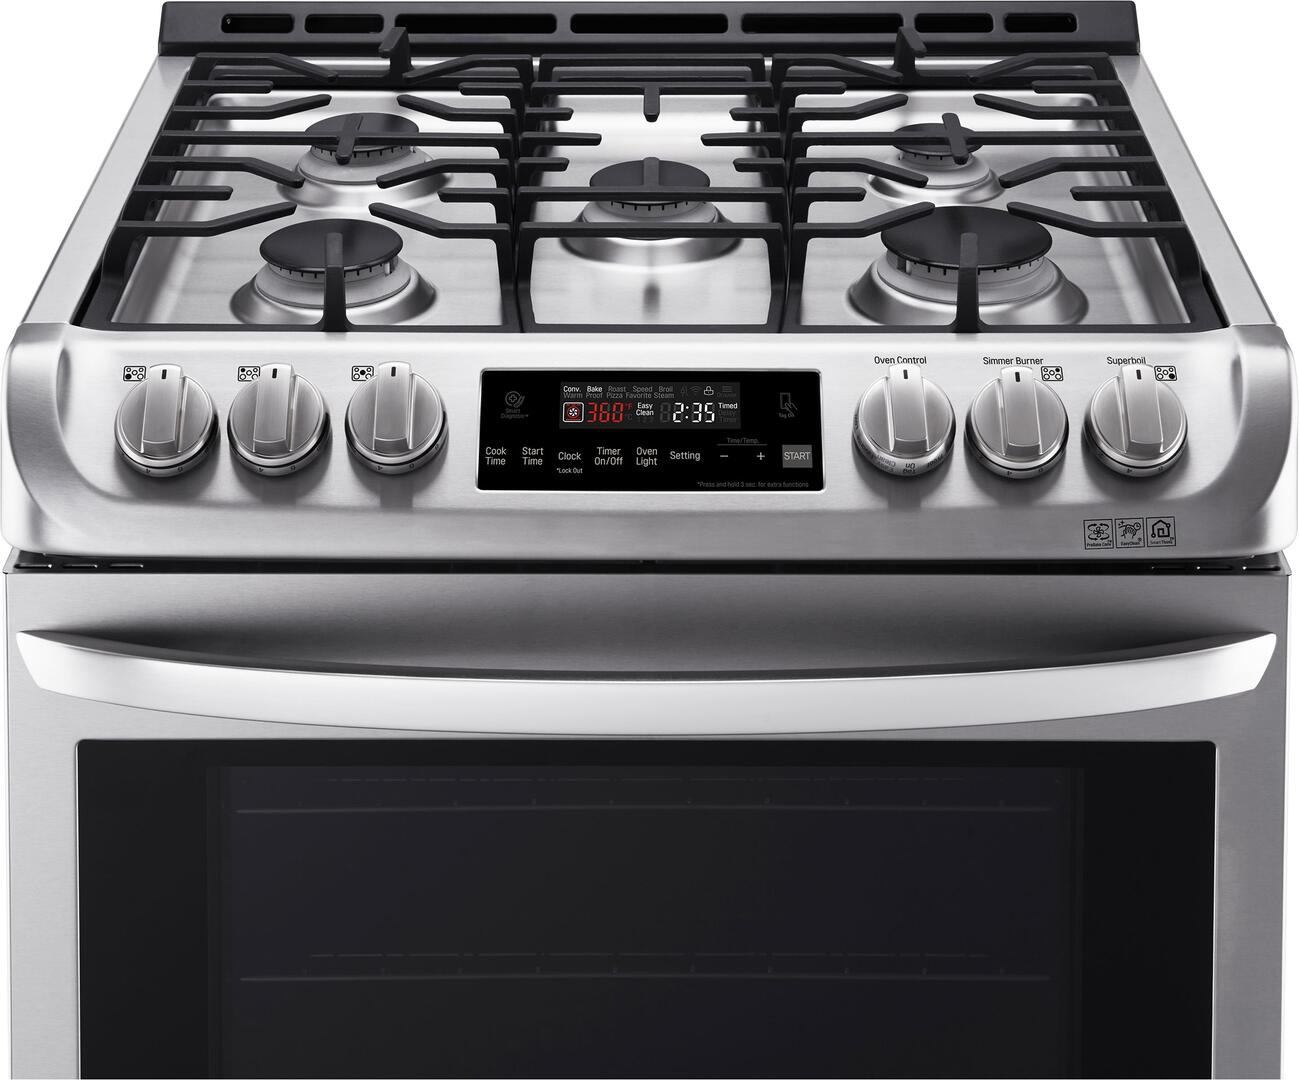 Kitchen gas stove top view - Lg Main Image Lg Detailed View